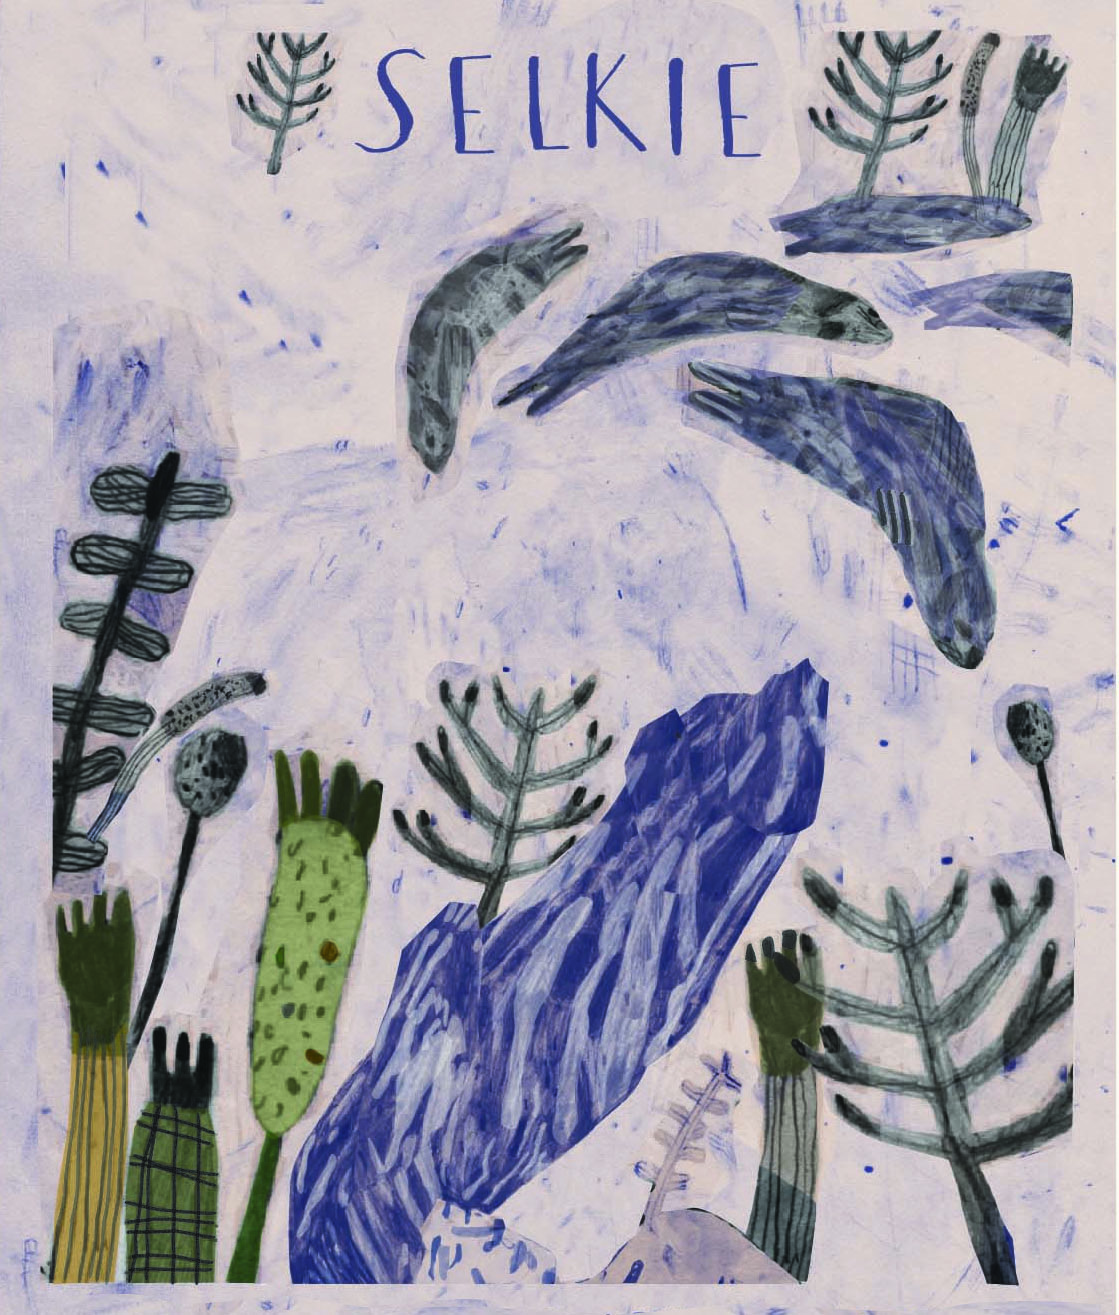 Brian McHendry 'Selkie' postcard, commissioned exclusively for ÒR